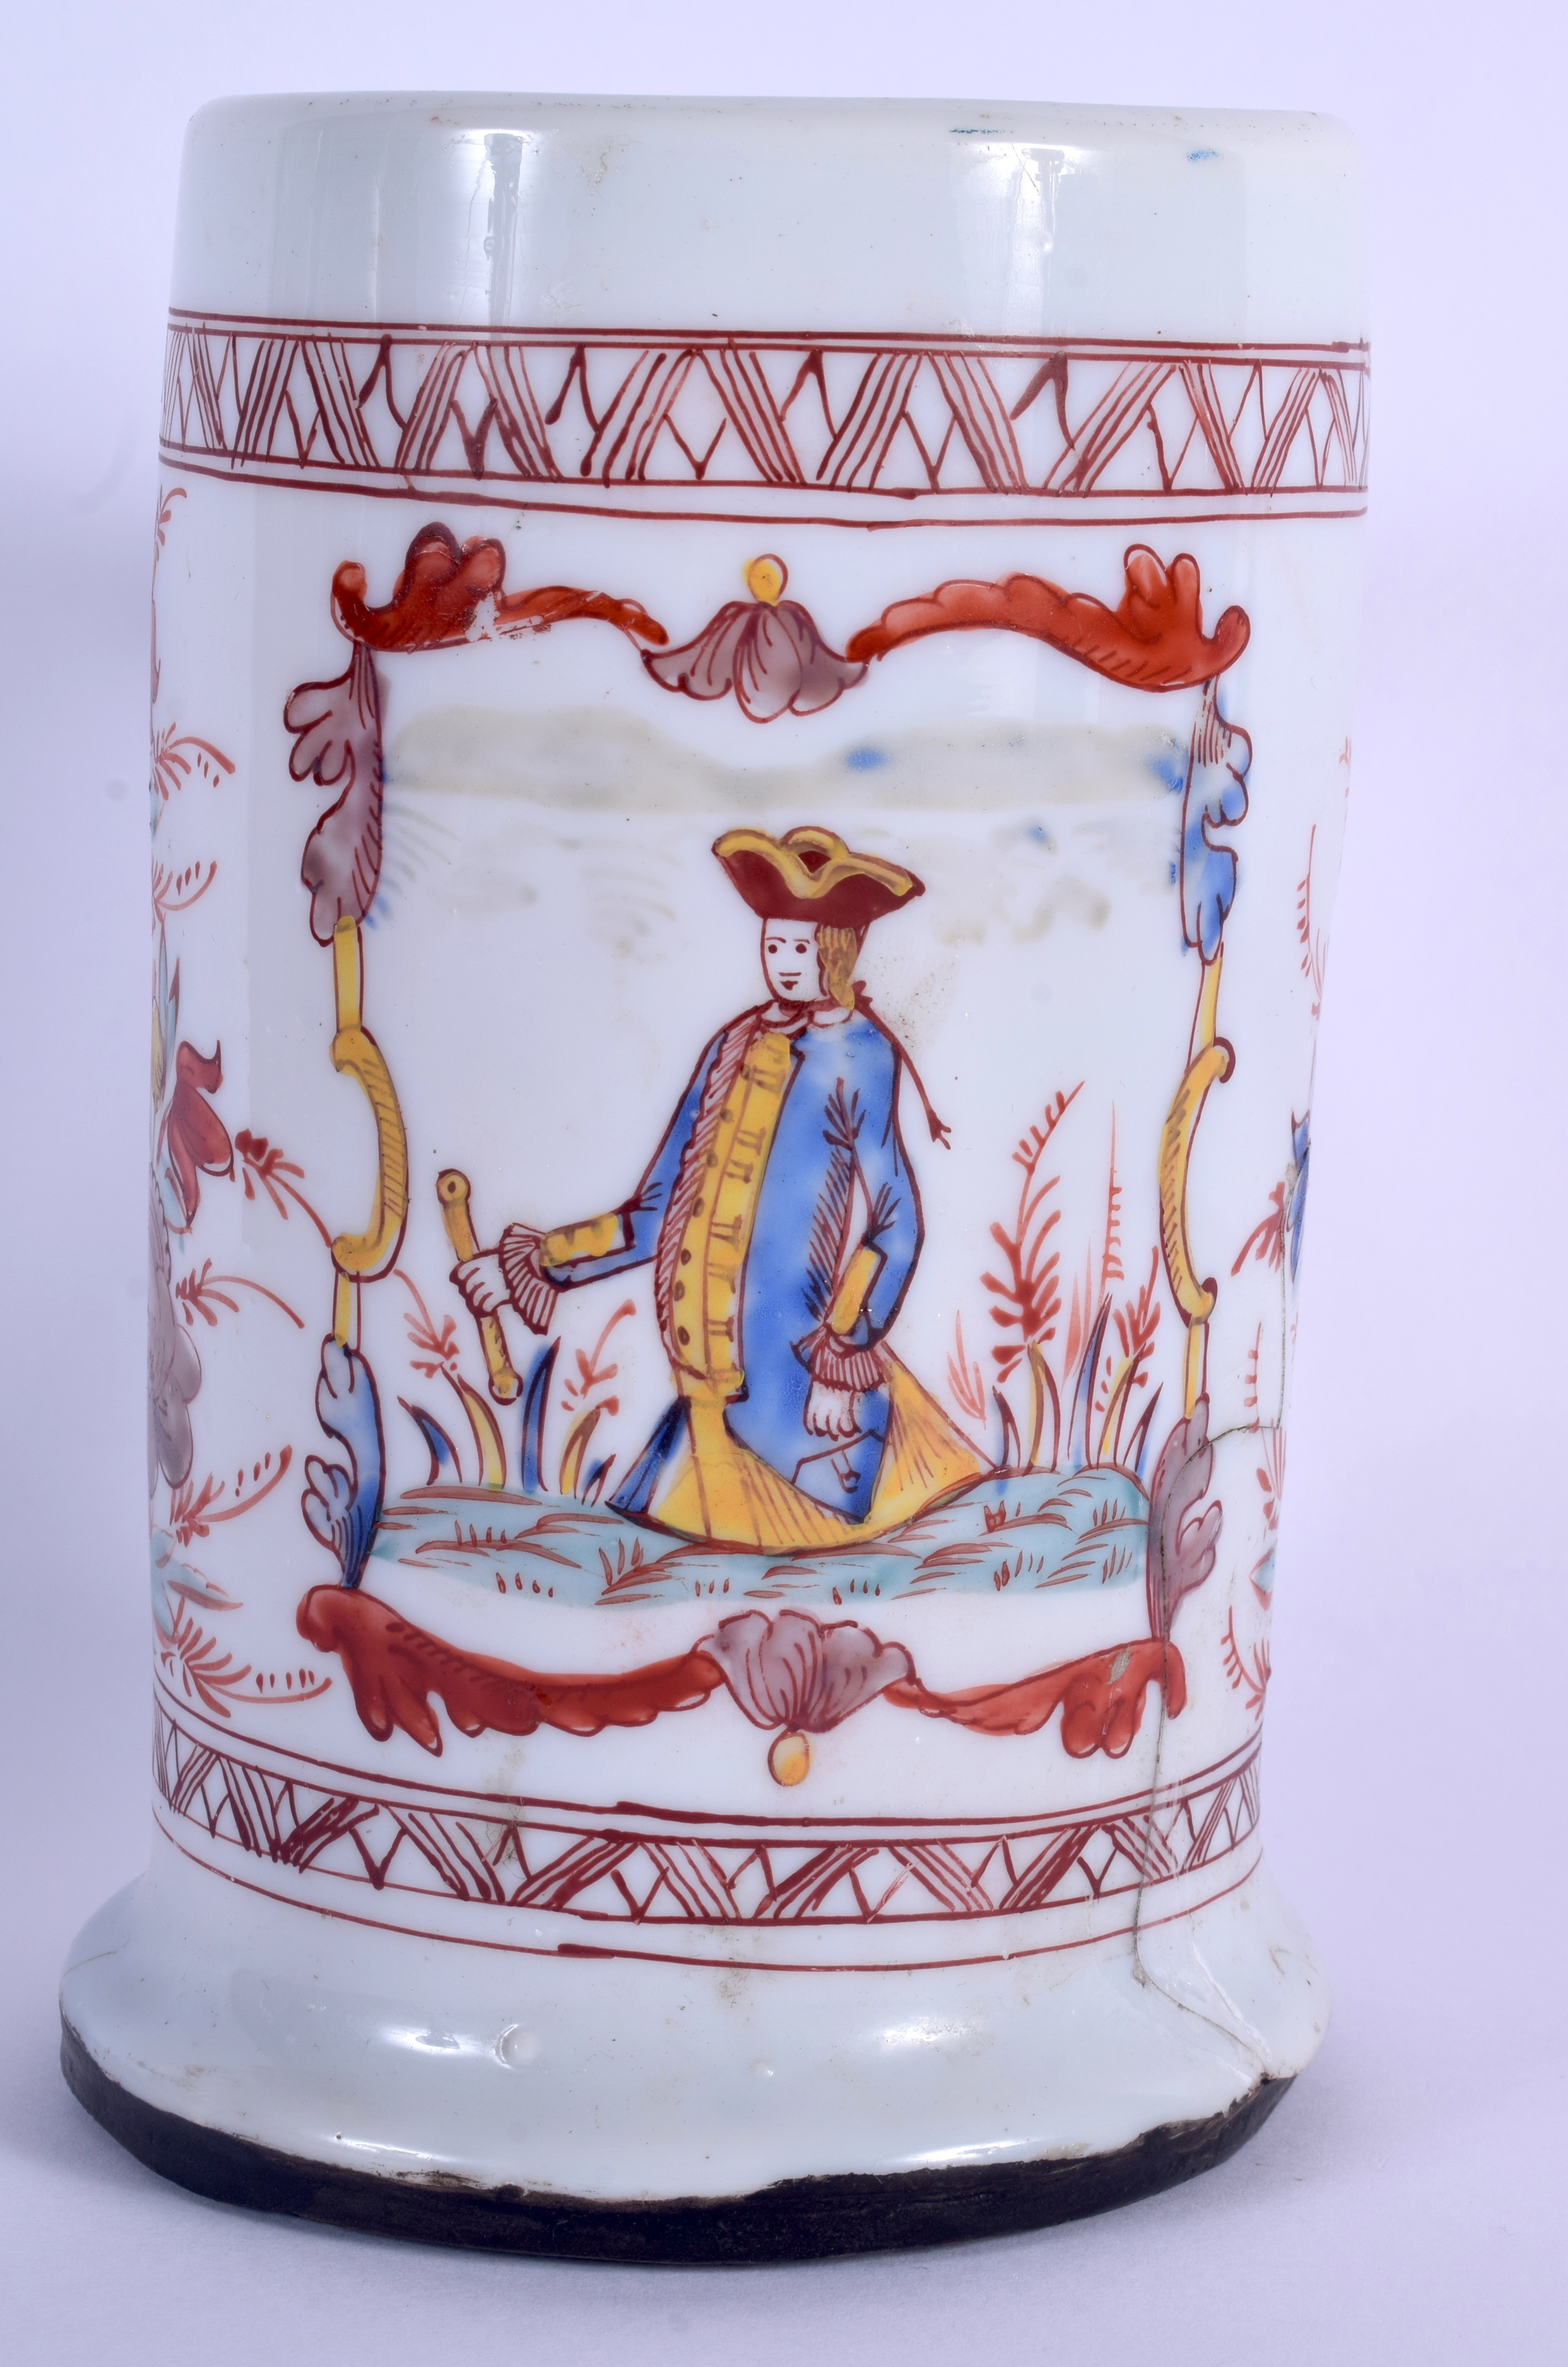 AN 18TH CENTURY ENGLISH ENAMELLED MILK GLASS TANKARD possibly made for the Dutch market. 18.5 cm hig - Image 3 of 5